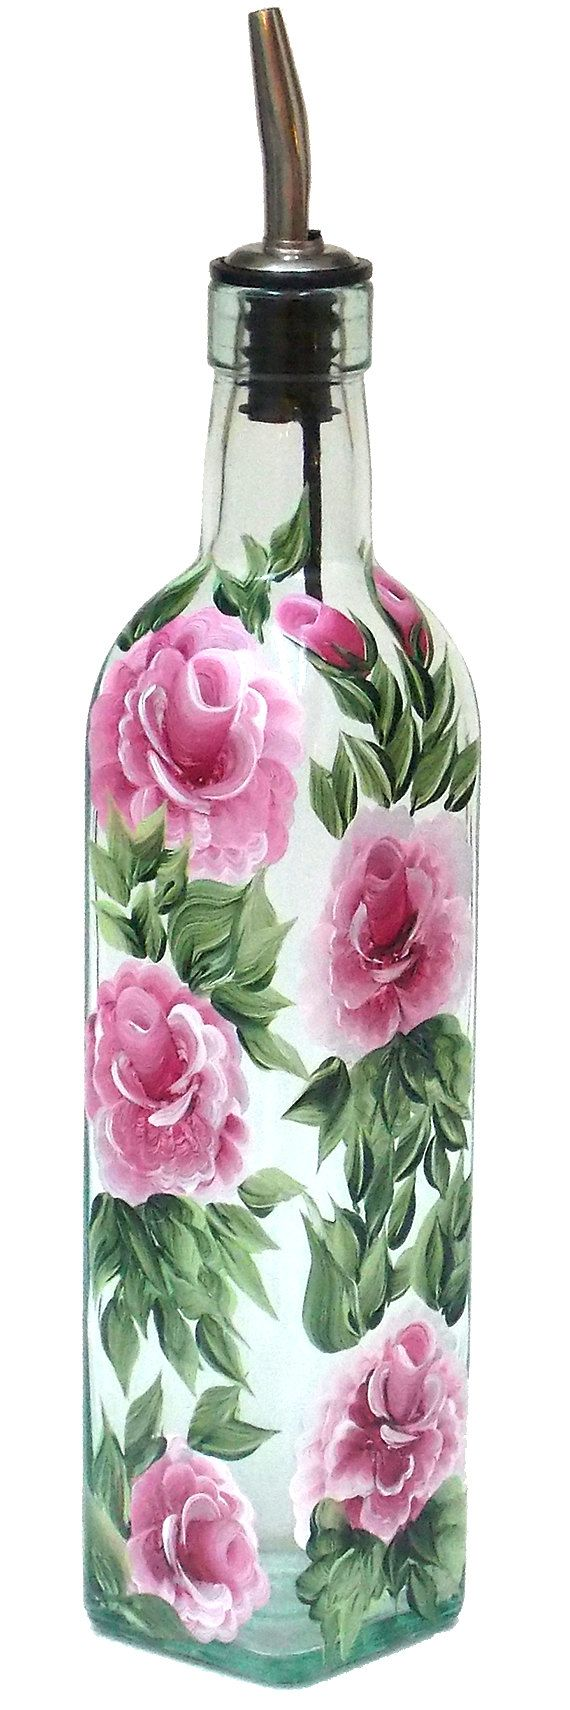 45 best hand painted glass bottles images on pinterest for Hand painted glass bottles